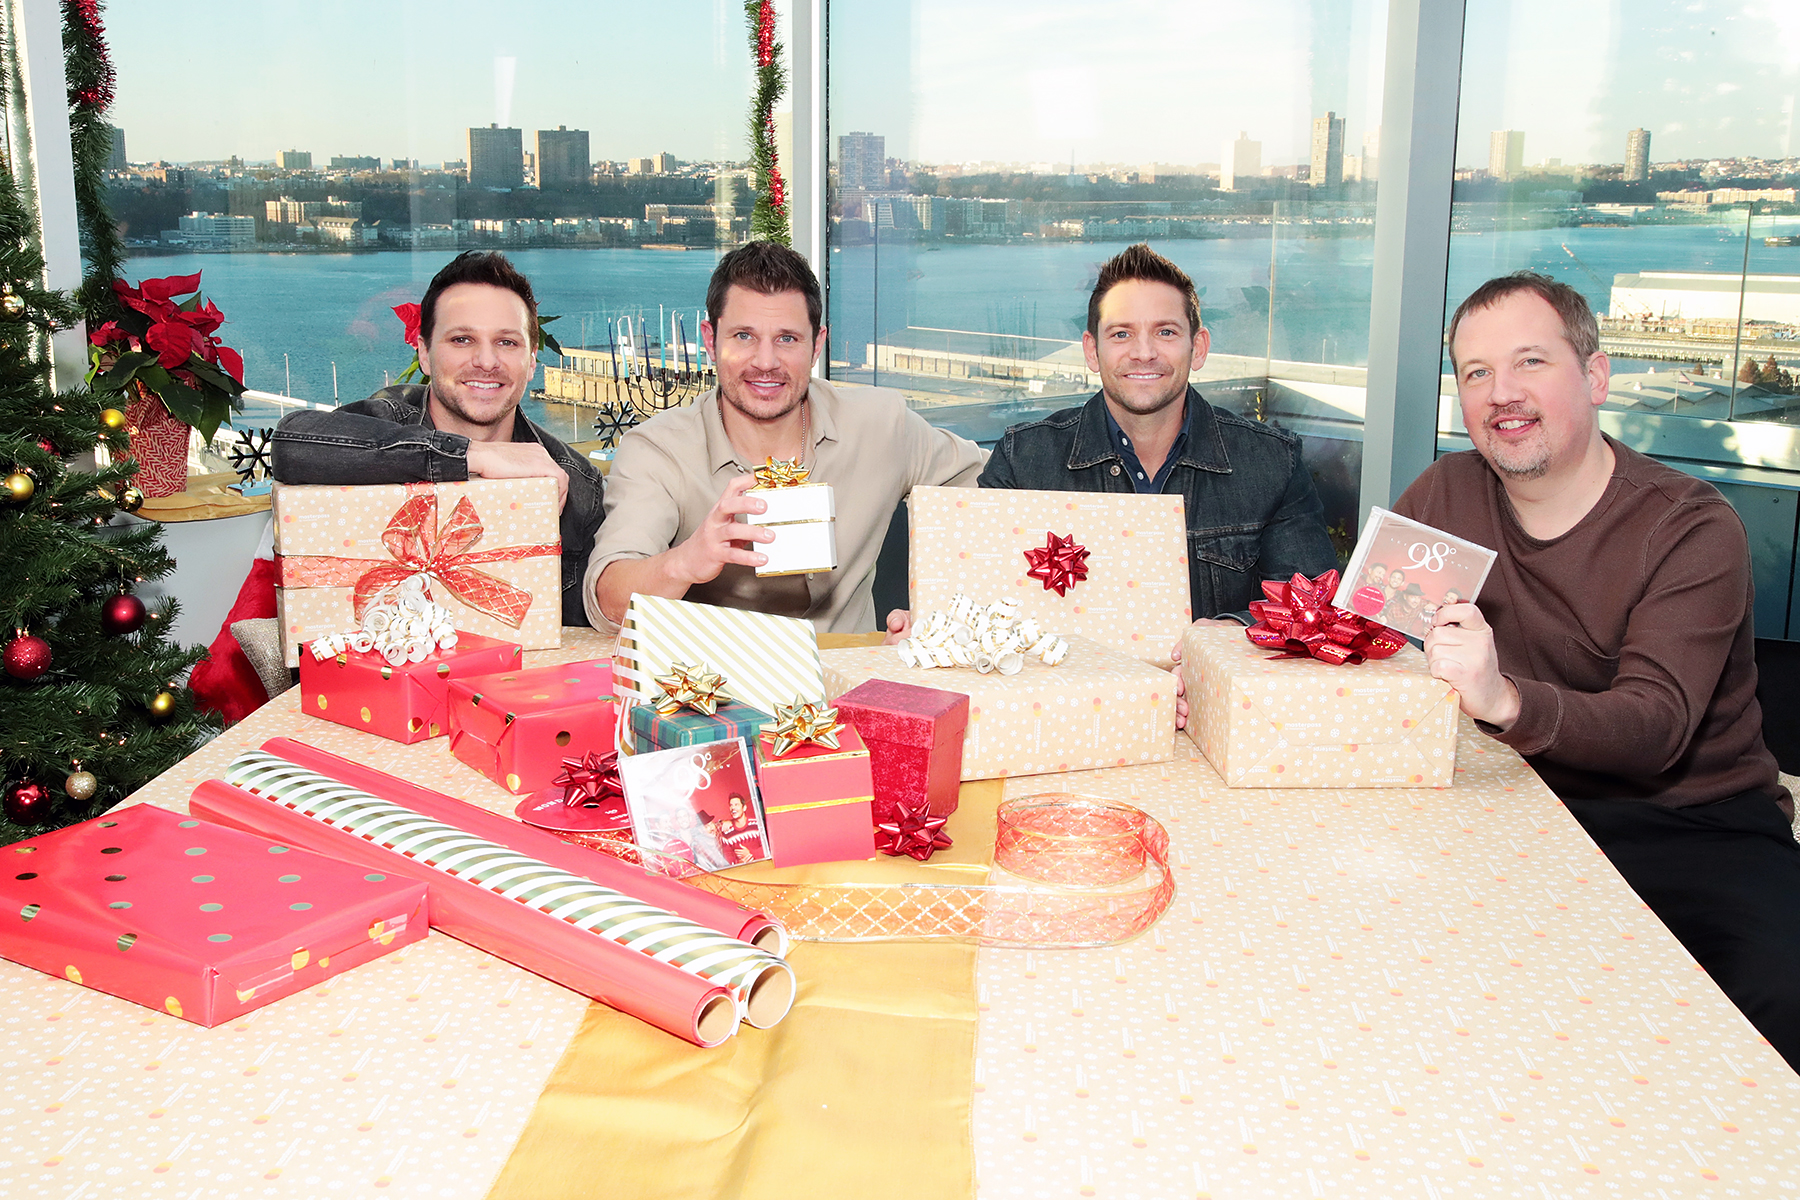 Drew Lachey Nick Lachey Jeff Timmons Justin Jeffre 98 Degrees